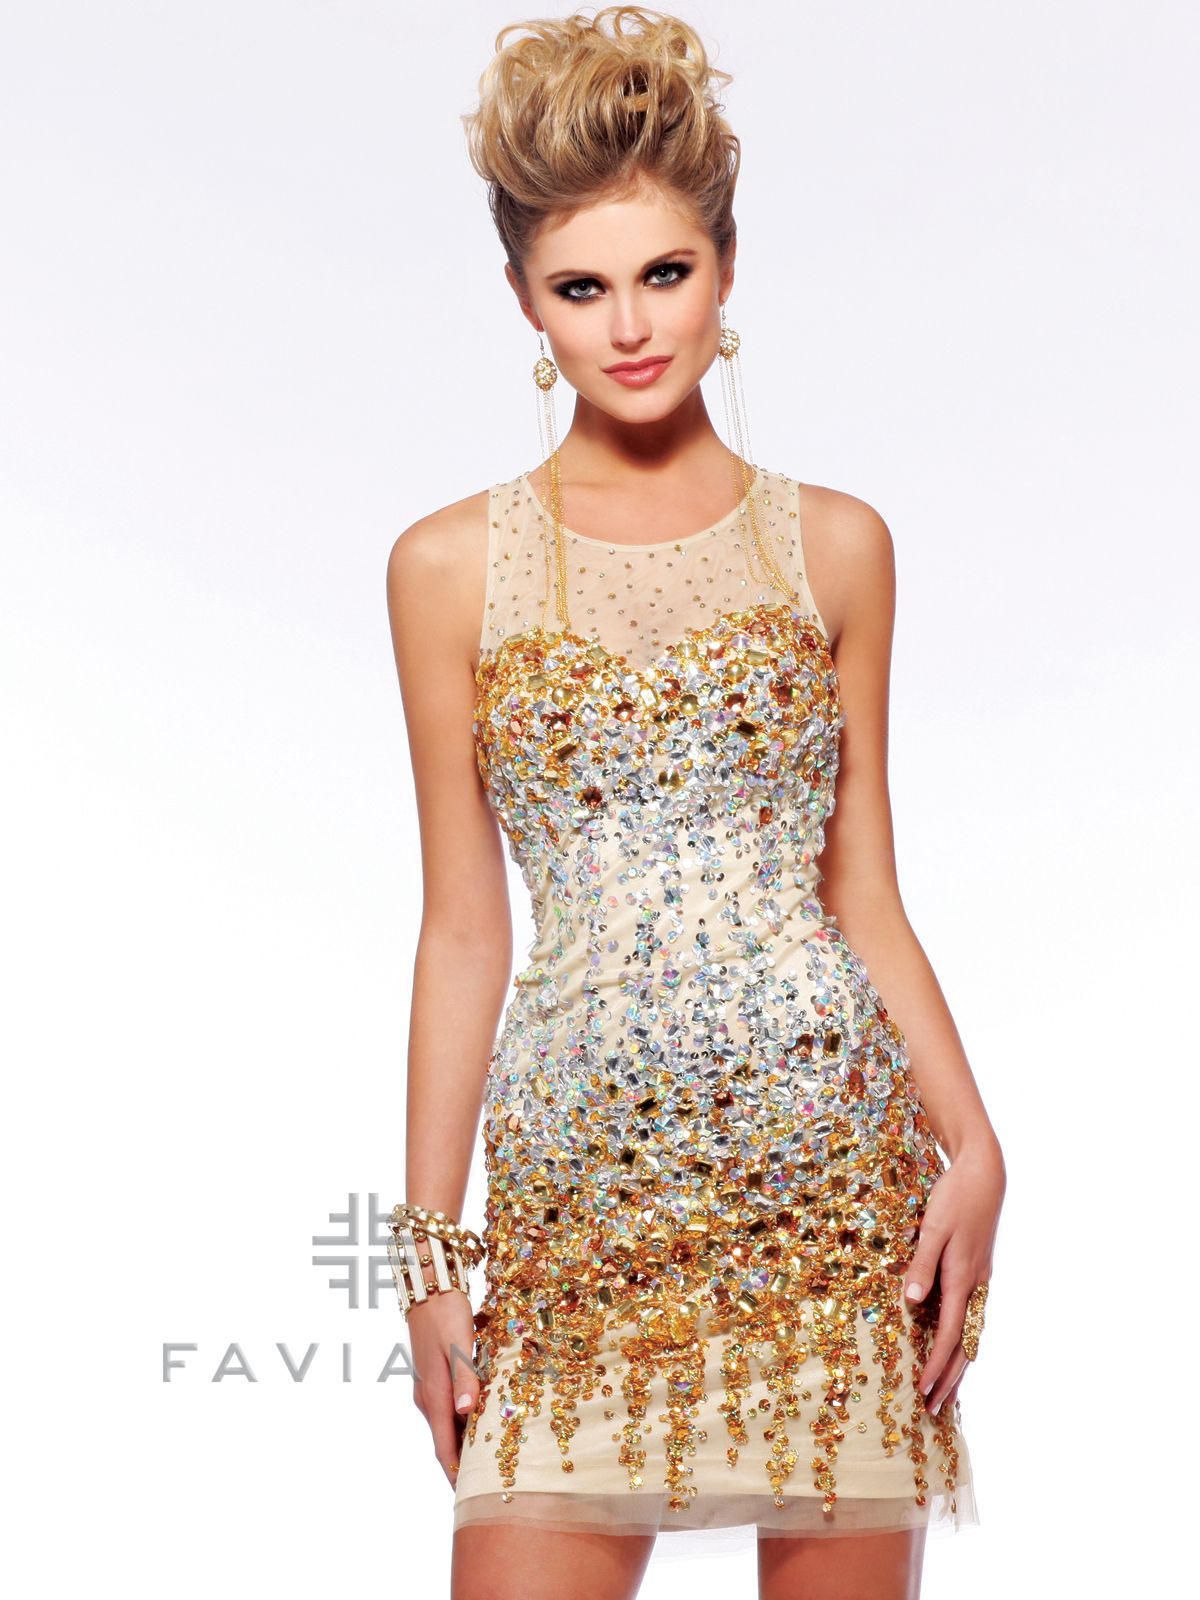 Every single angle and detail of this breathtaking cocktail dress are meant to steal all the compliments. Slip into this sexy party minidress by Faviana S7158 featuring sheer illusion high neckline with a hint of spark. The sheath silhouette made out of Stretch Mesh is decked out in Golden stones and stunning beadwork. The skirt ends at the upper thigh length.